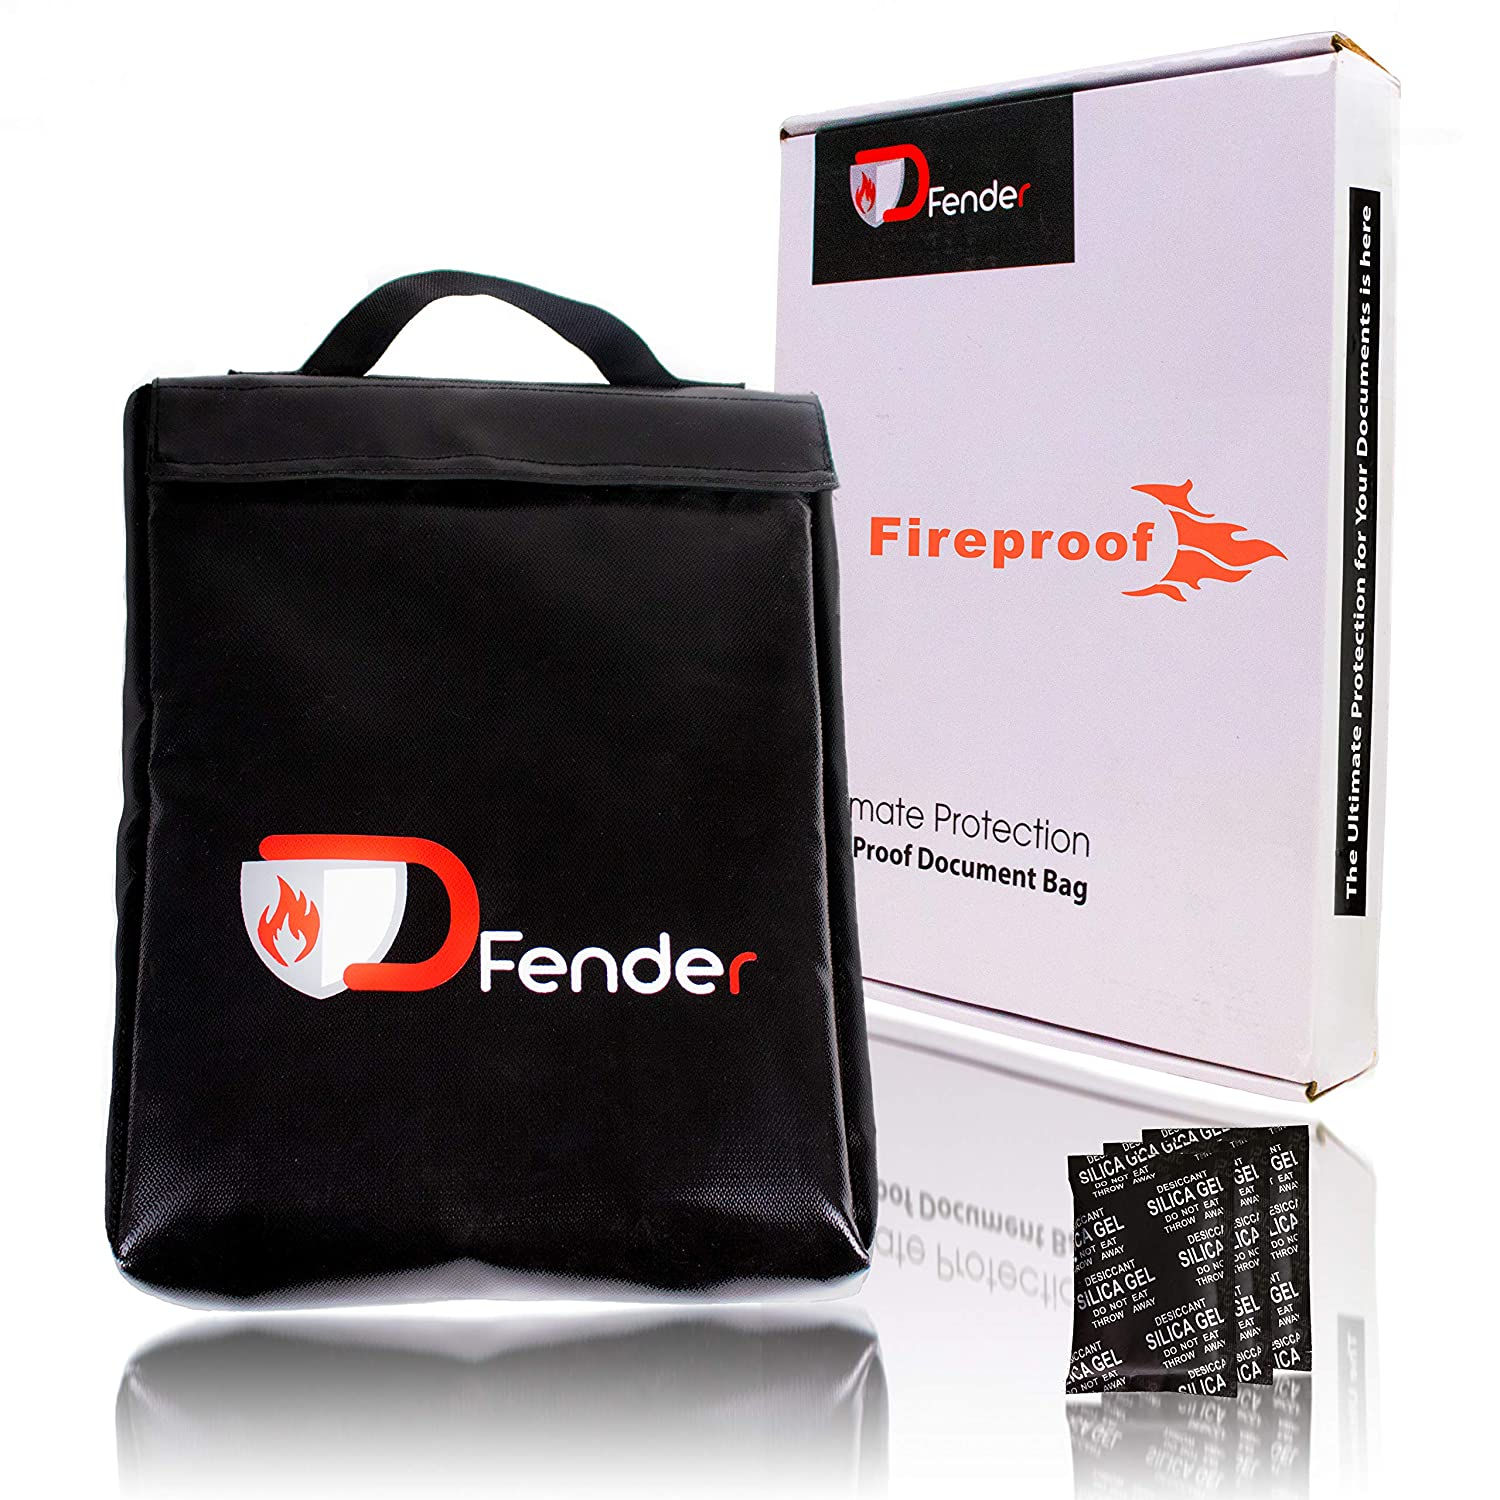 c0adf37580bd DOCFENDER Fireproof Document Bag - Be Safe Today with Large ...